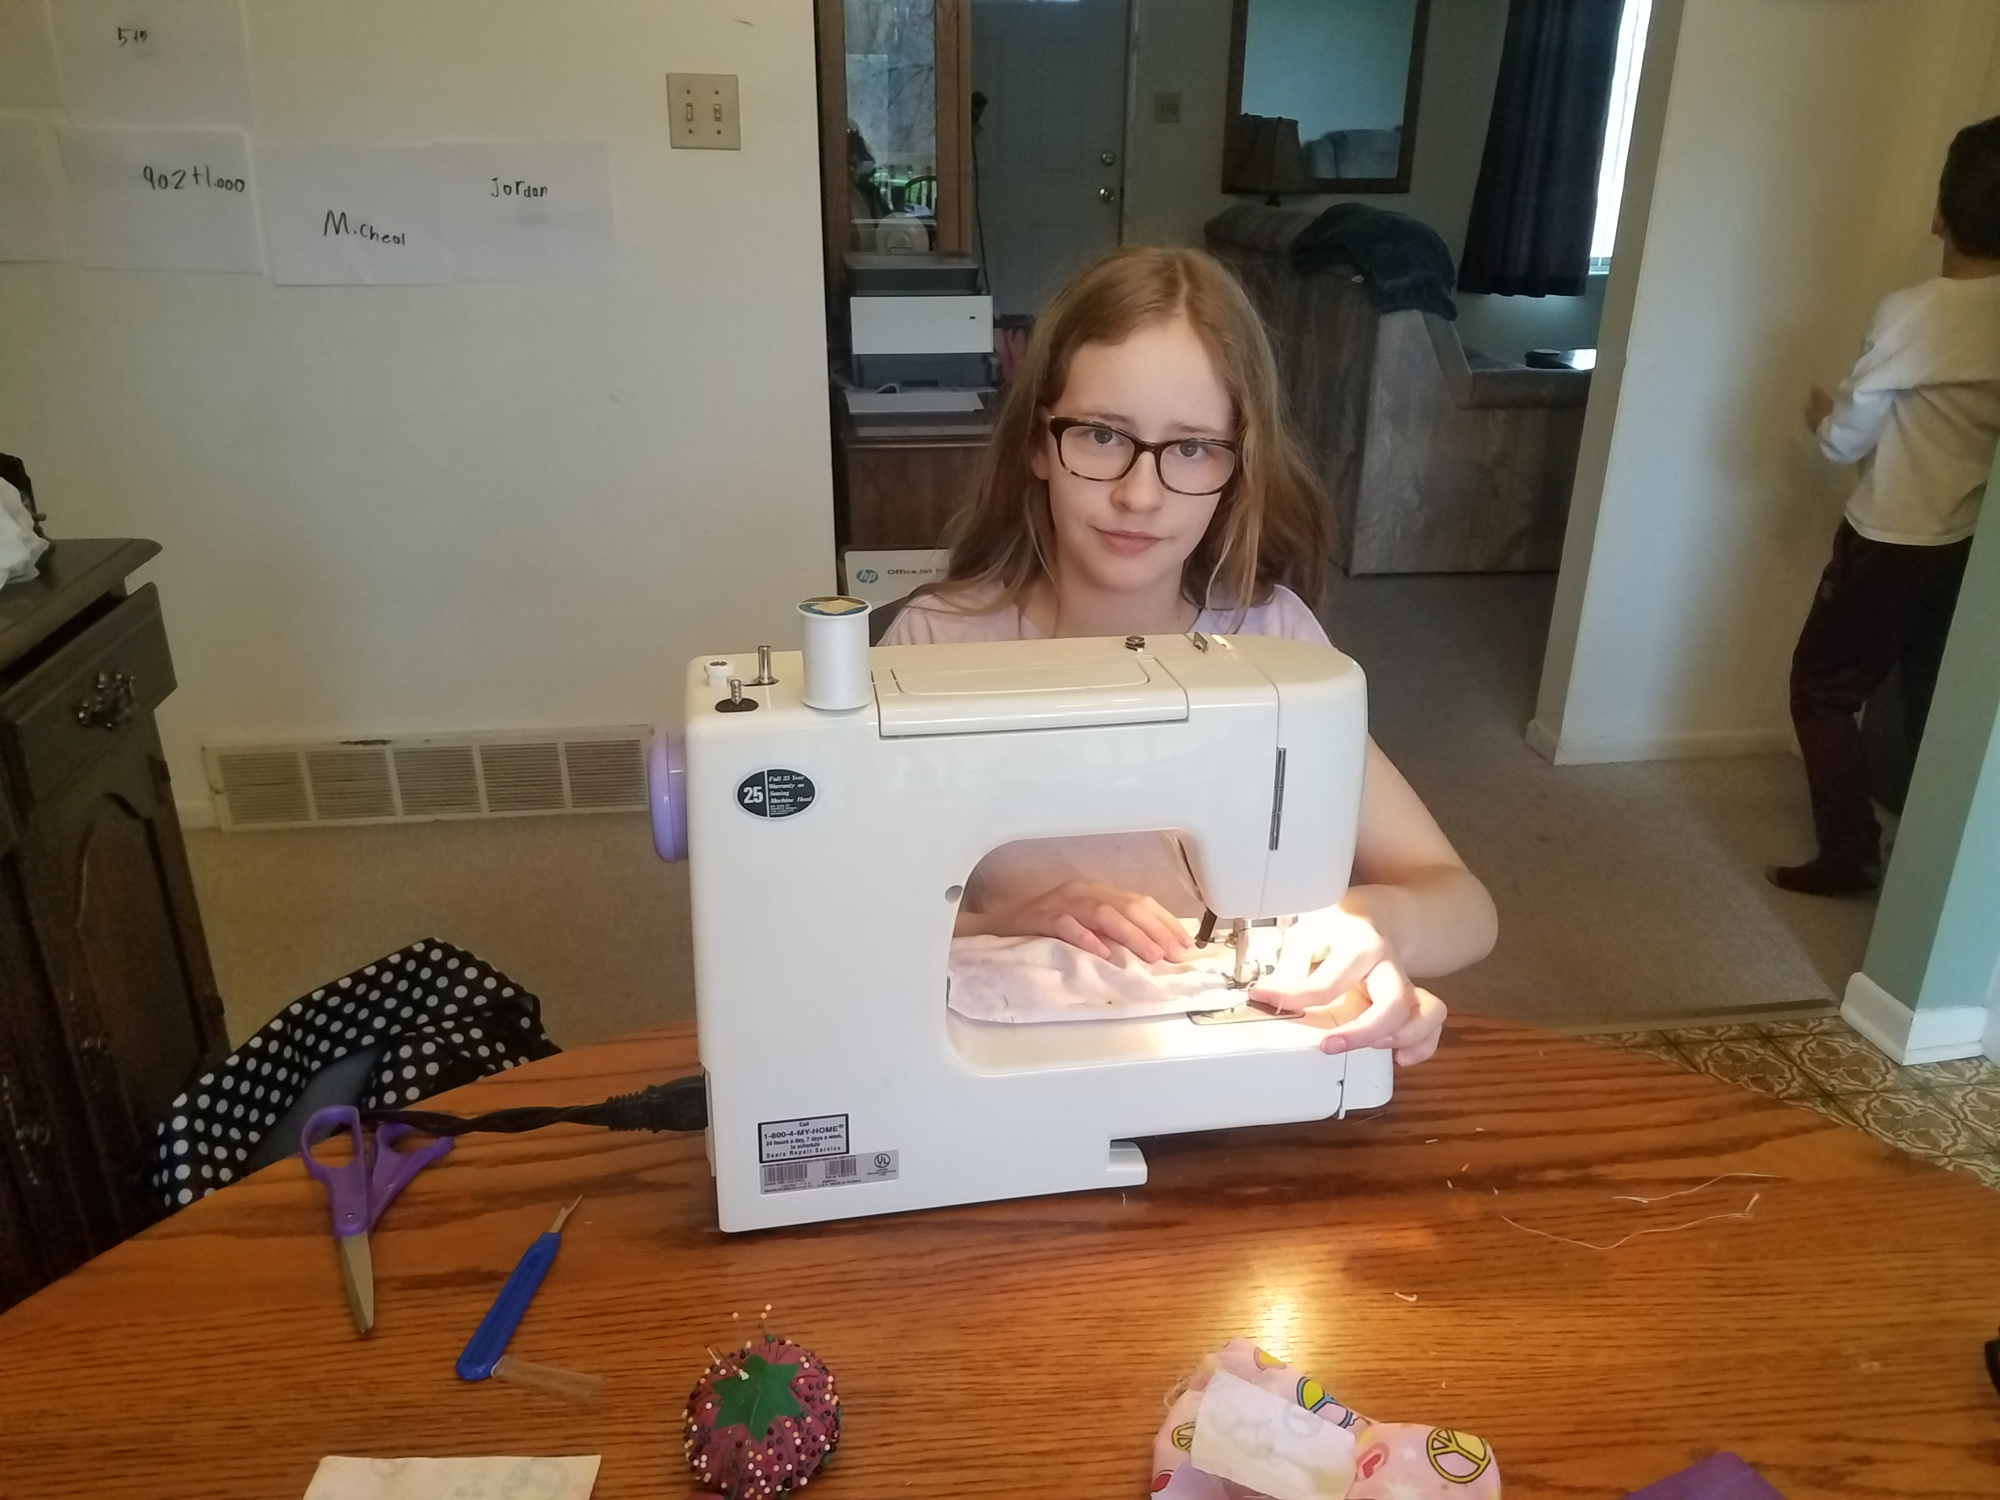 AudreySewing